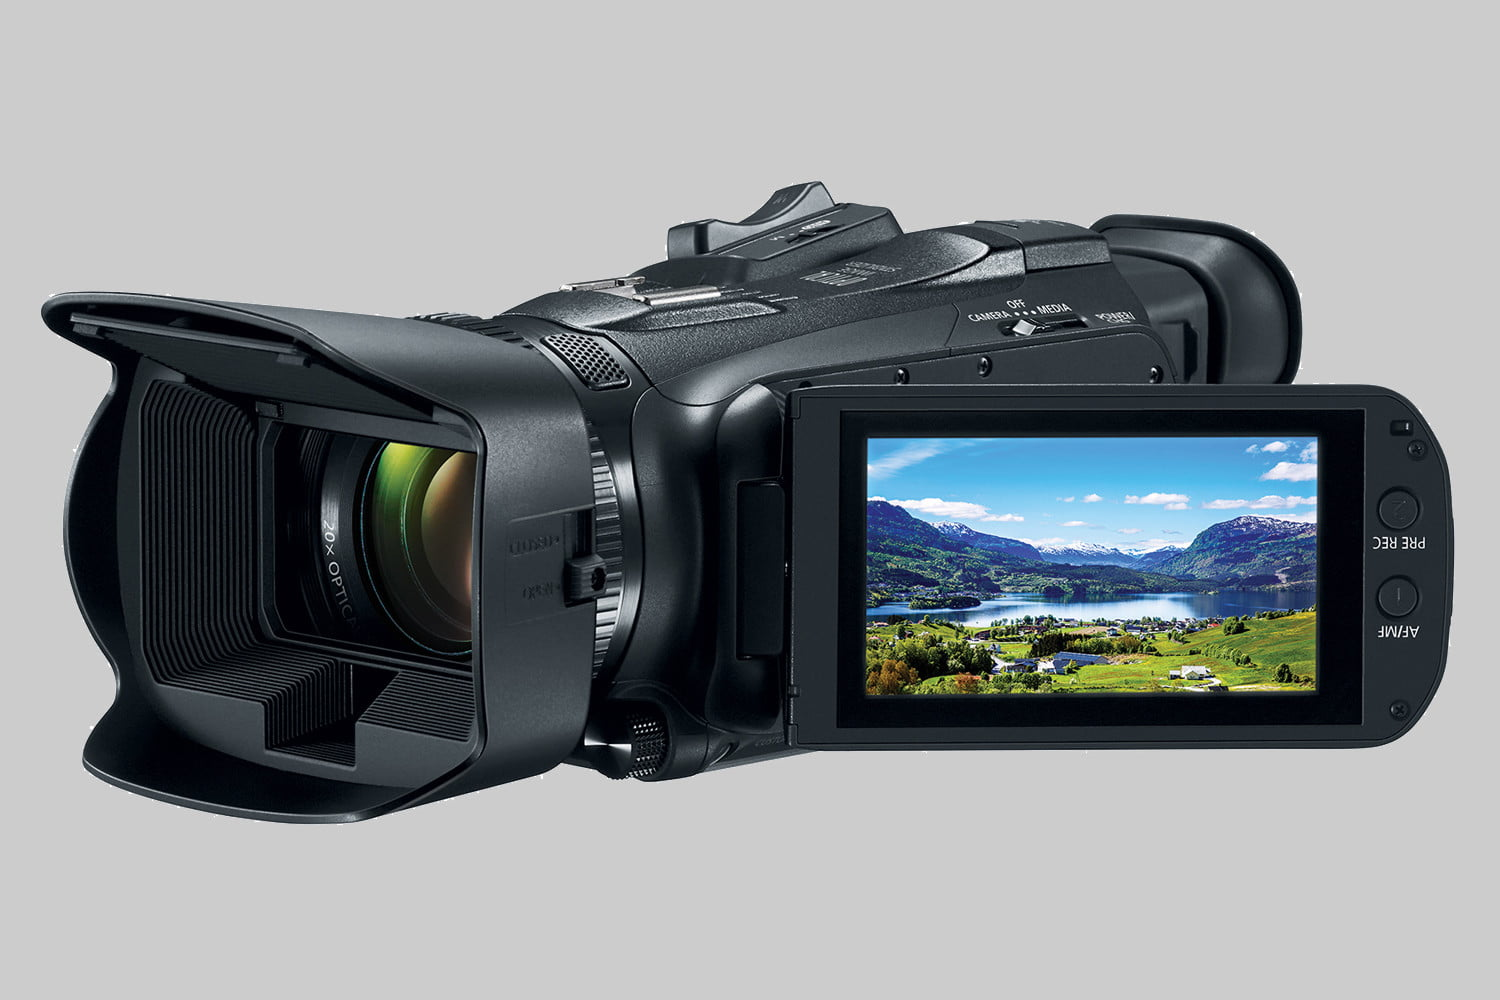 Canon pulls veil off its 4K prosumer and waterproof camcorders at CES 2019